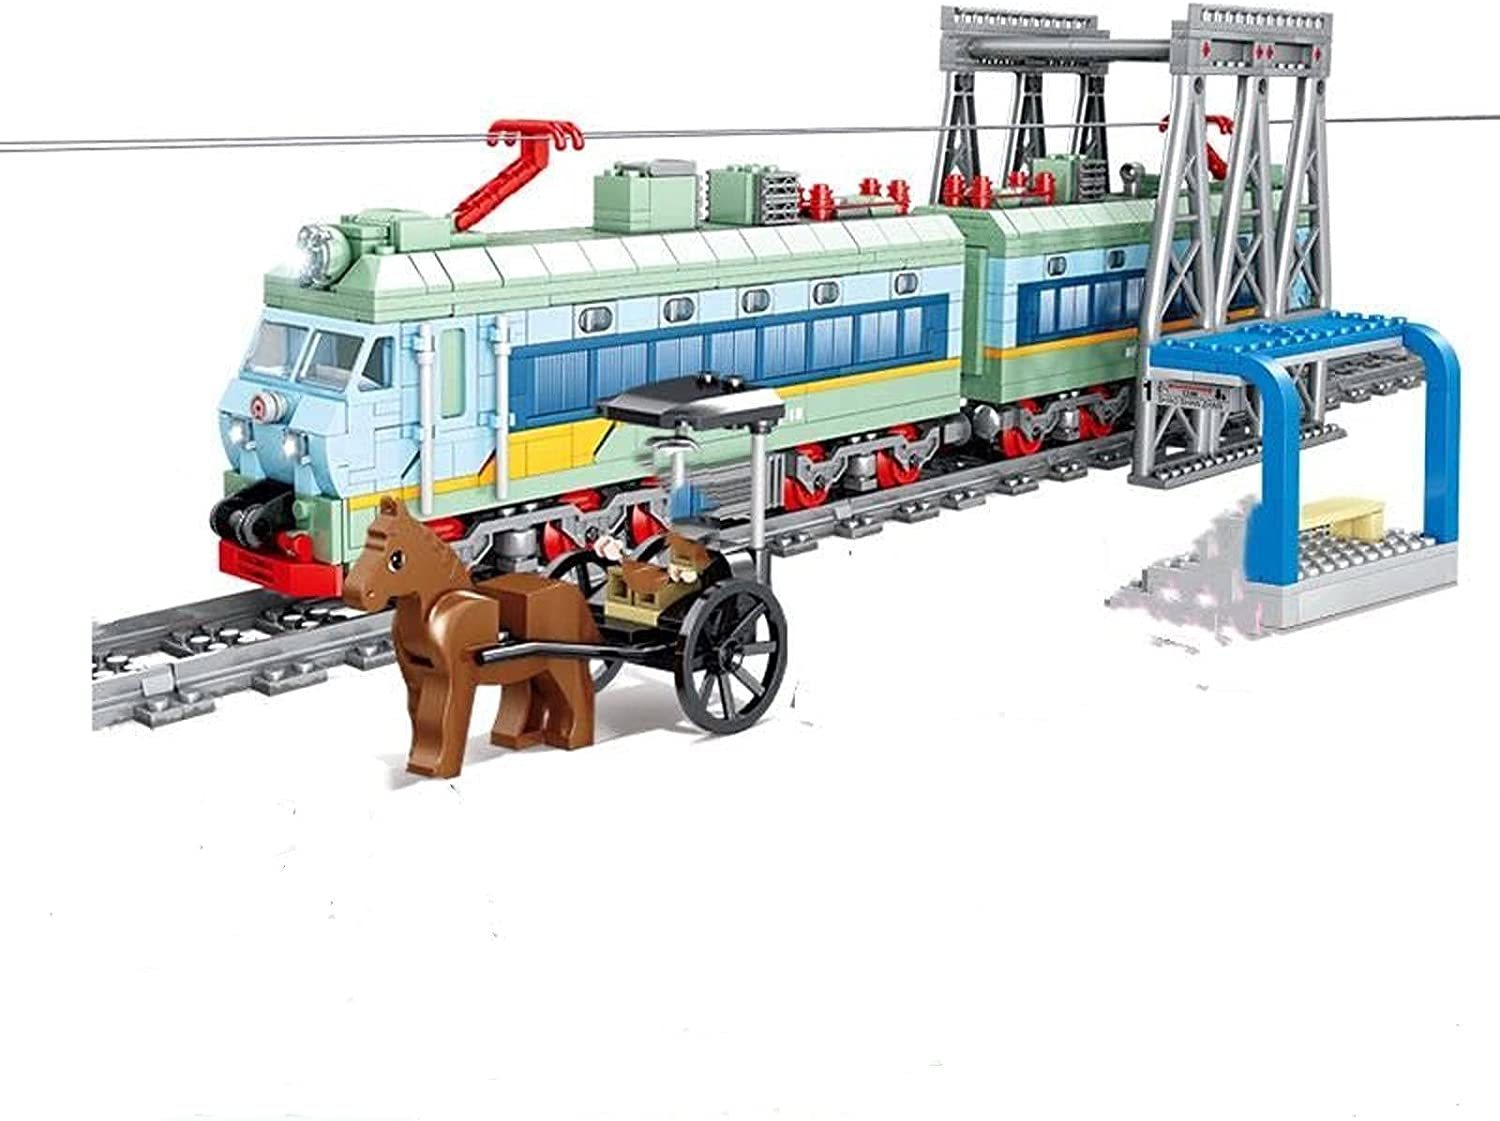 N\C In a popularity Children's Building Block Train Track Mach Urban Set Laying Dealing full price reduction